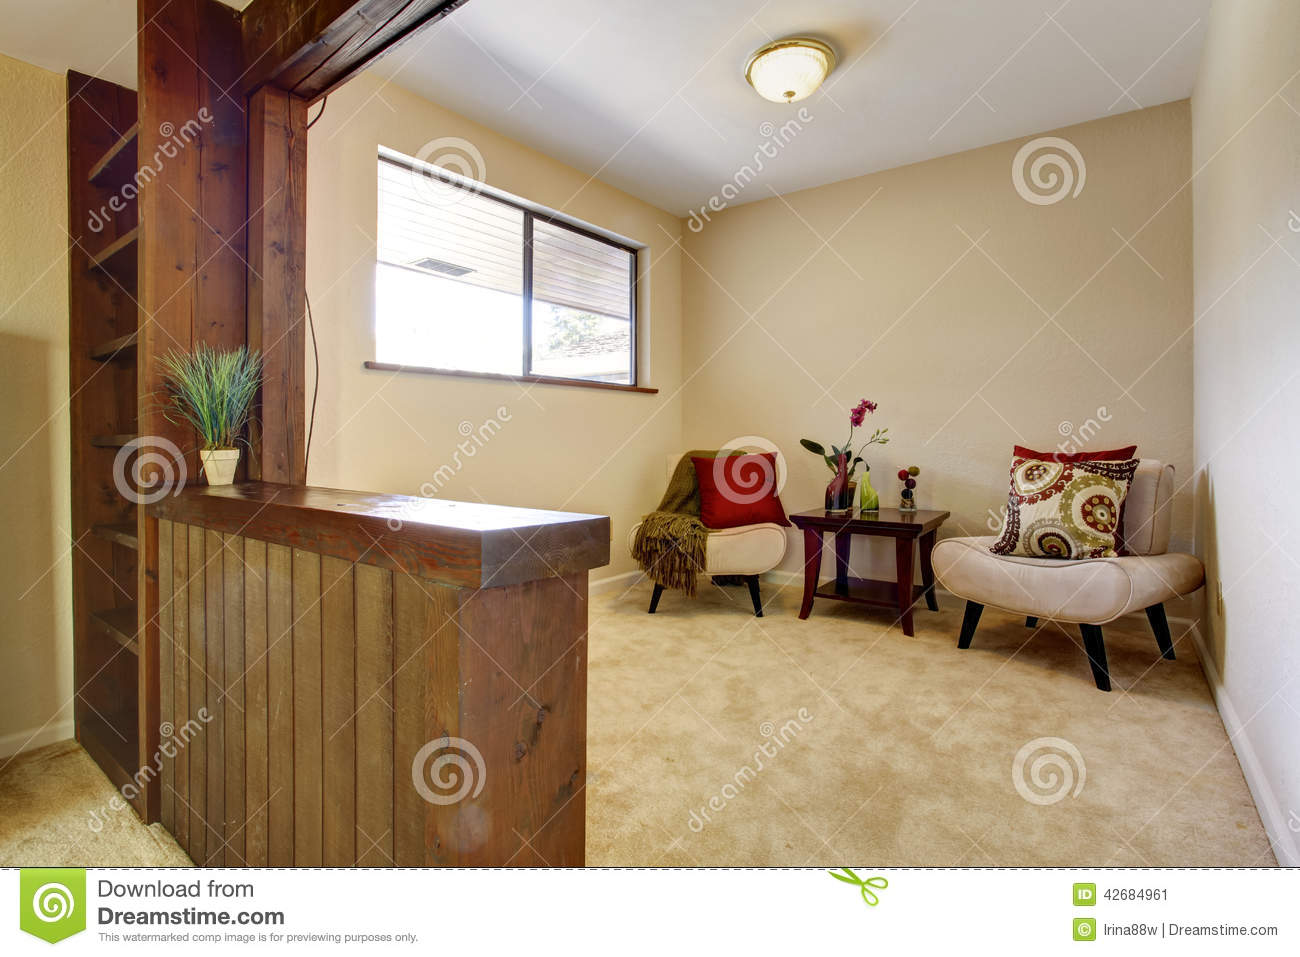 Bedroom Interior With Sitting Area Stock Photo Image 42684961